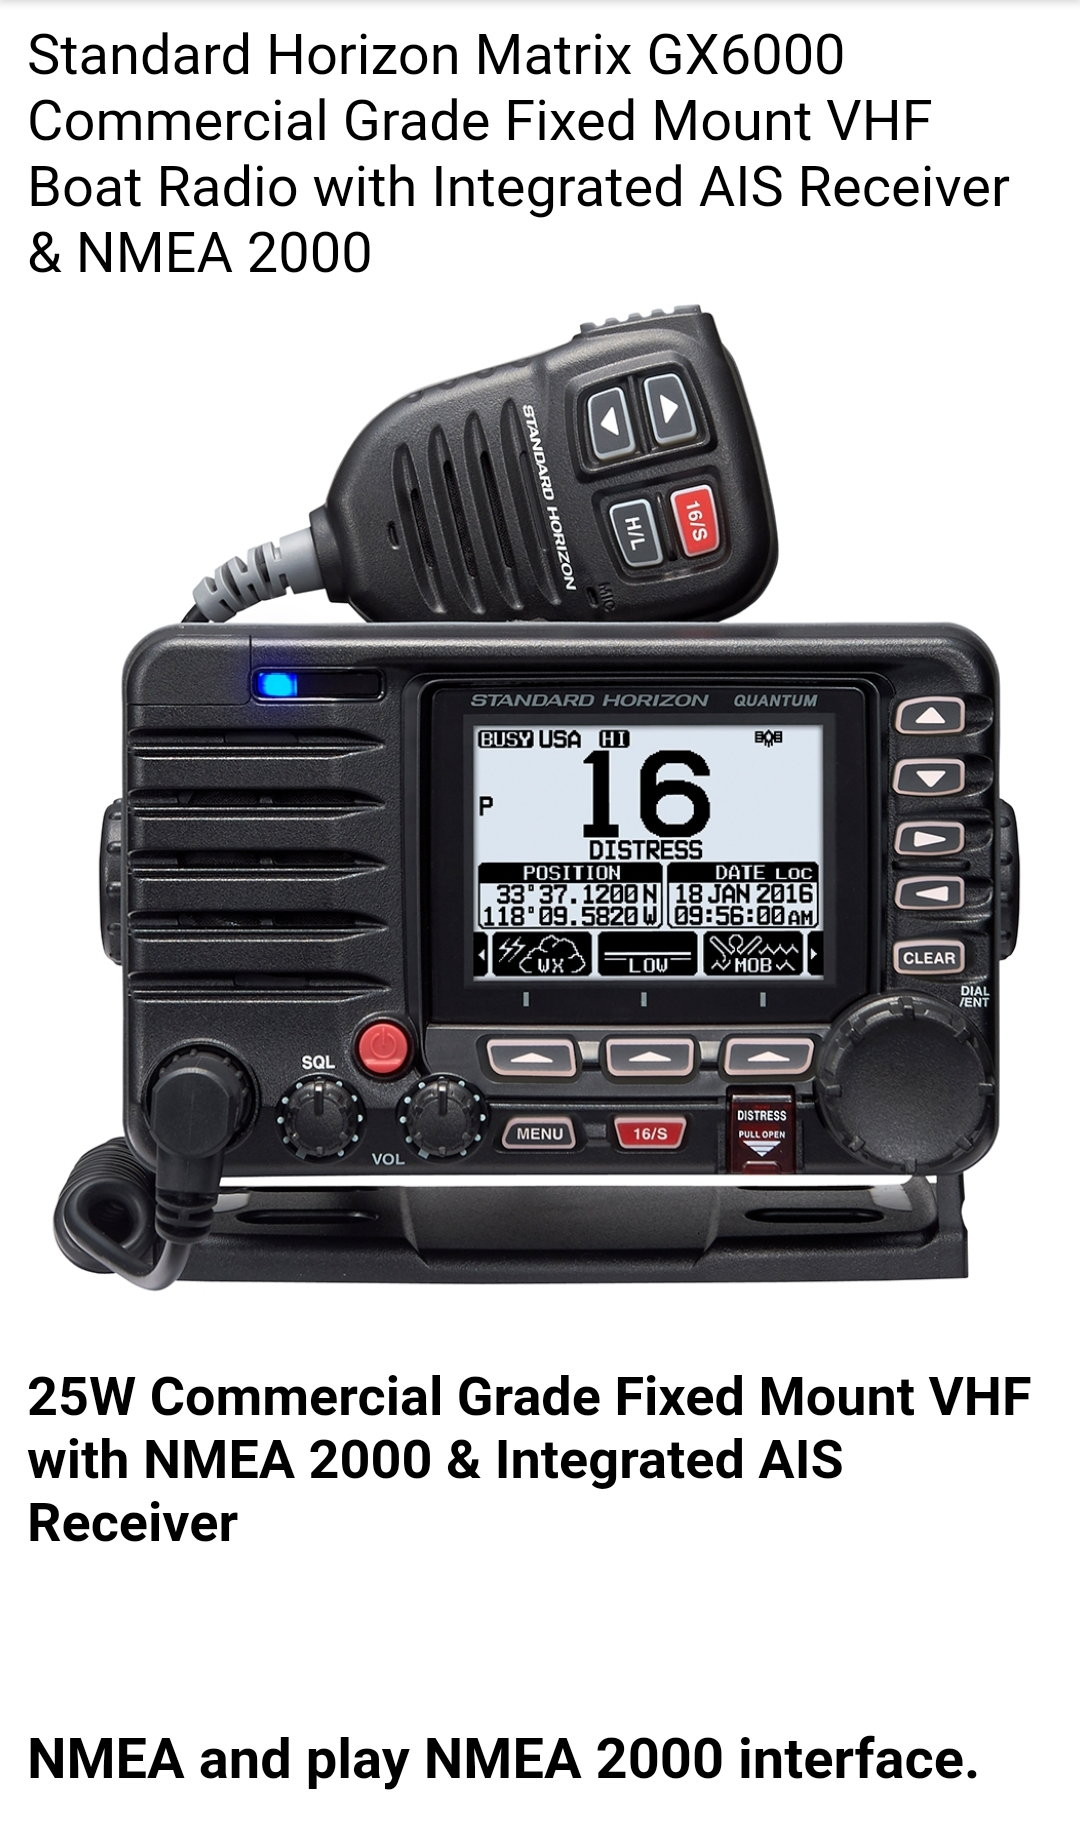 Is it possible to put a Military type radio on a fishing boat